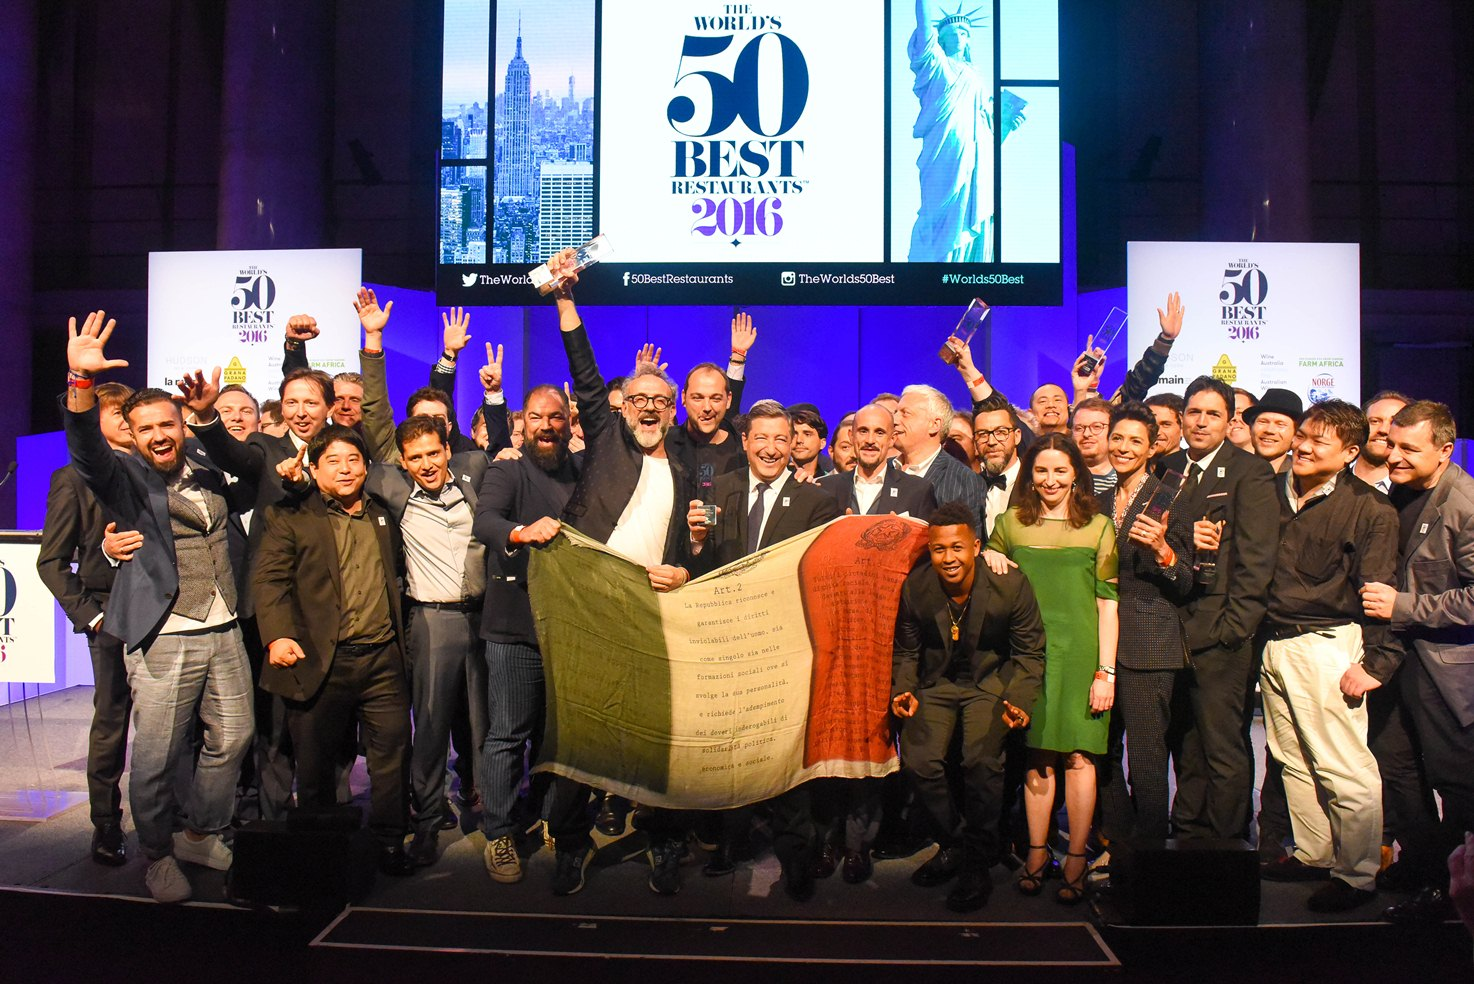 The World's 50 Best Chefs 2016